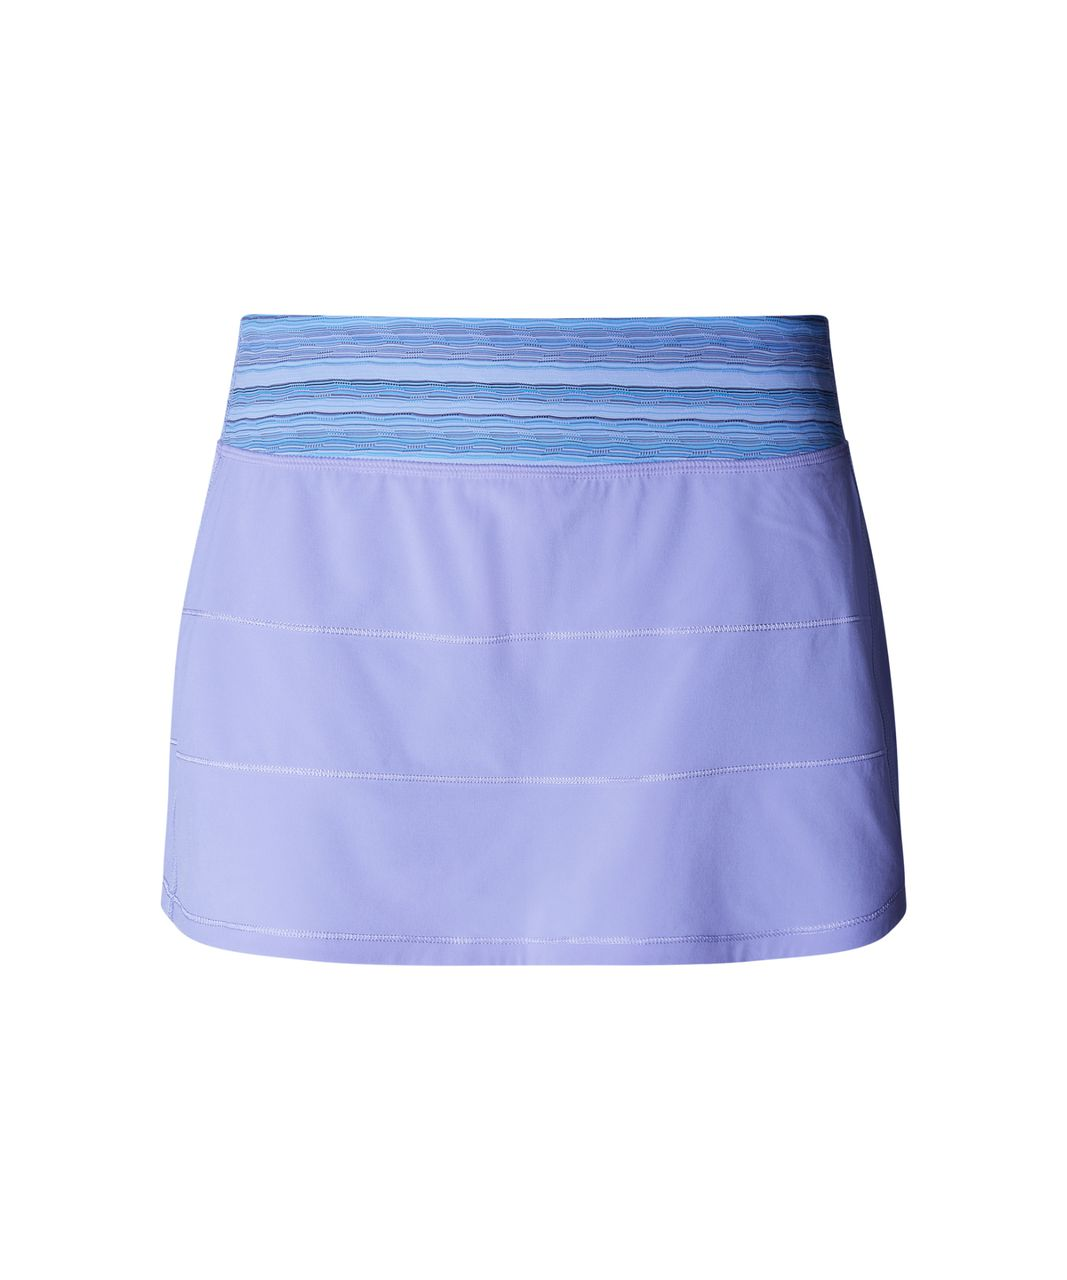 Lululemon Pace Rival Skirt II (Regular) - Lilac / Wave Twist Lilac Caspian Blue